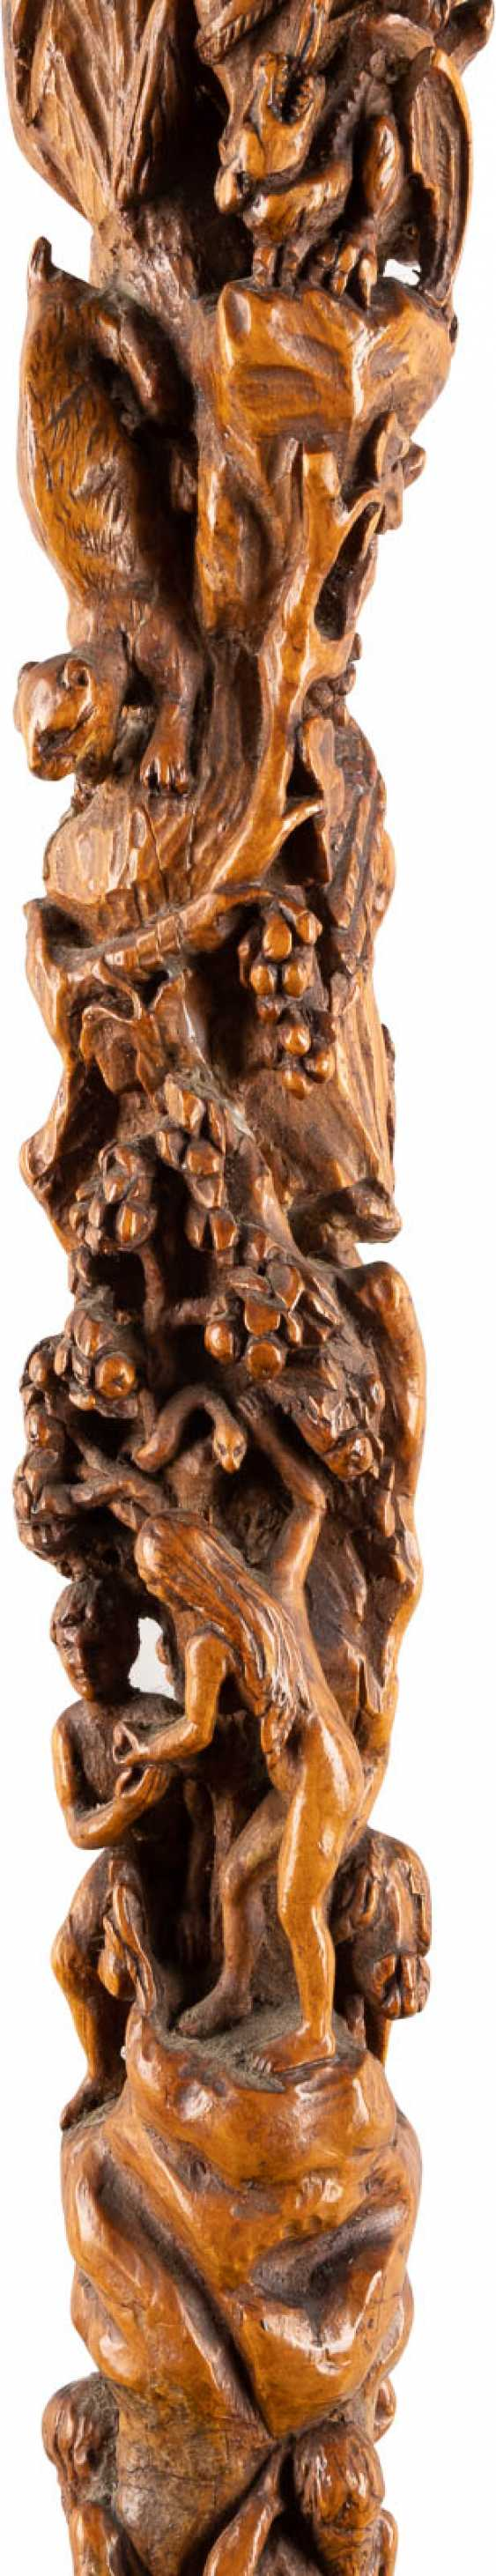 WALKING STICK WITH FIGURAL CARVING - photo 3